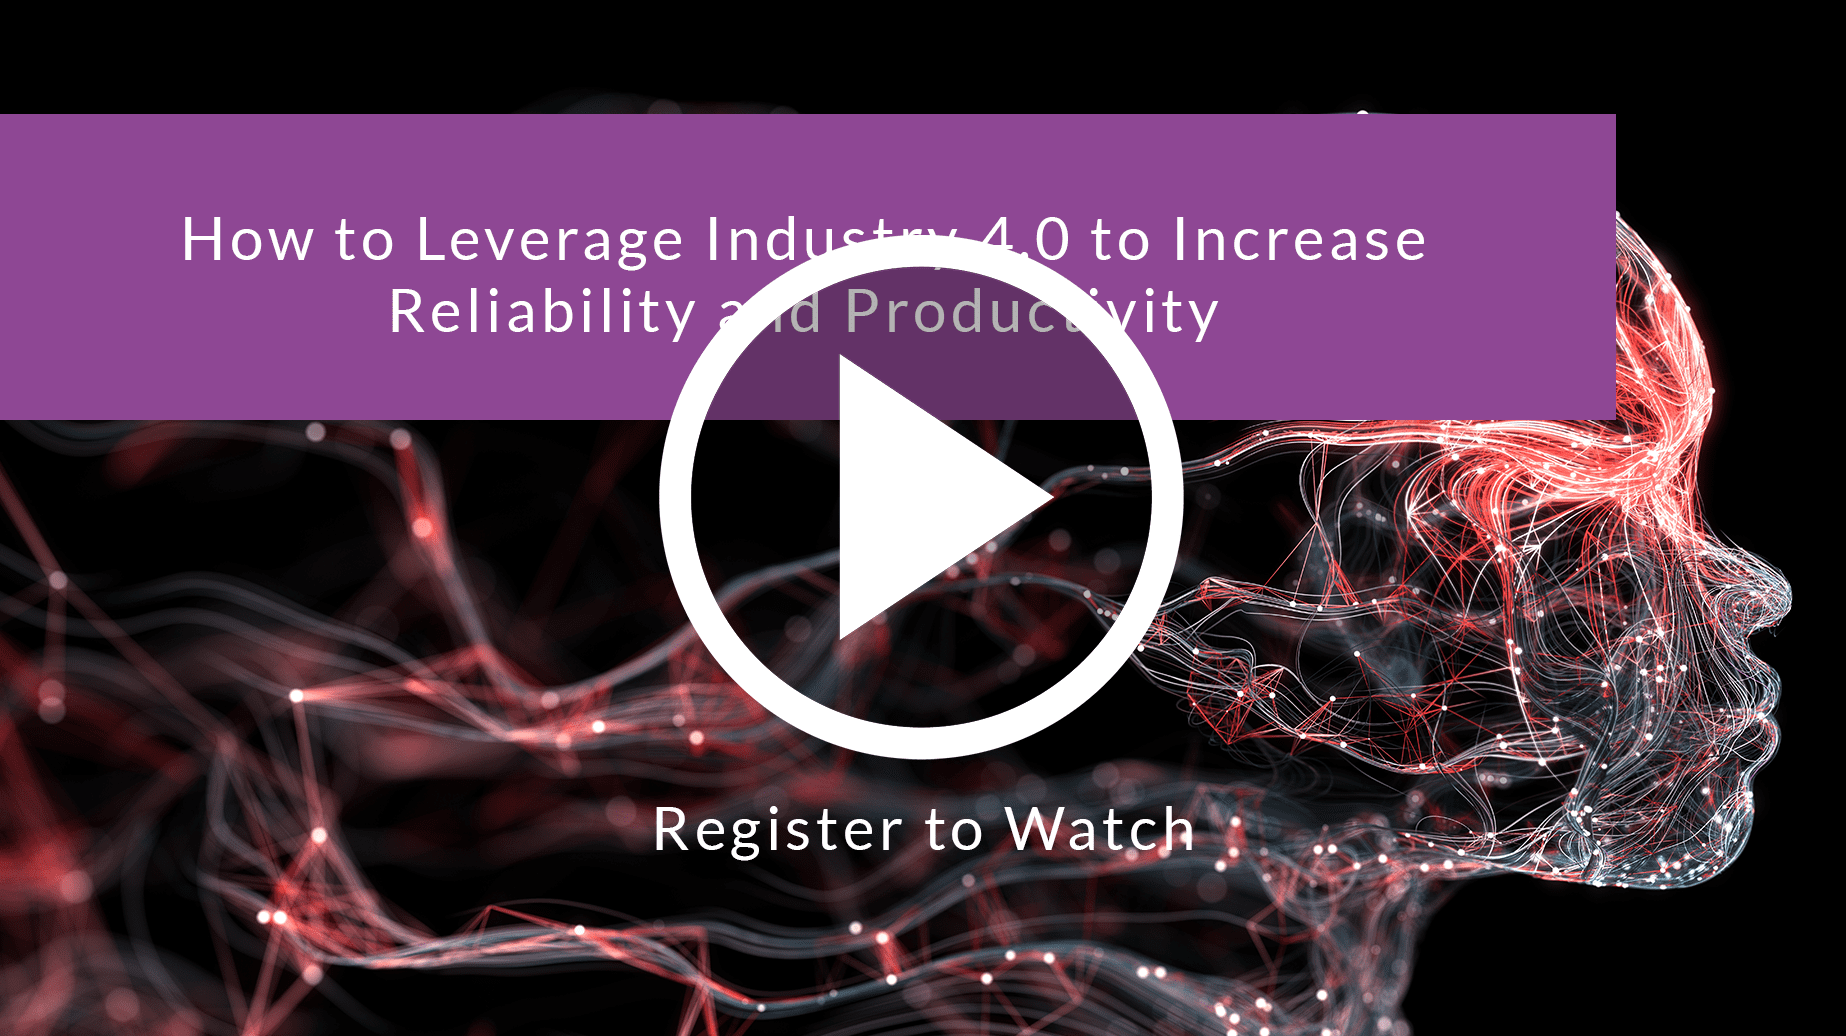 How to Leverage Industry 4.0 To Increase Reliability And Productivity